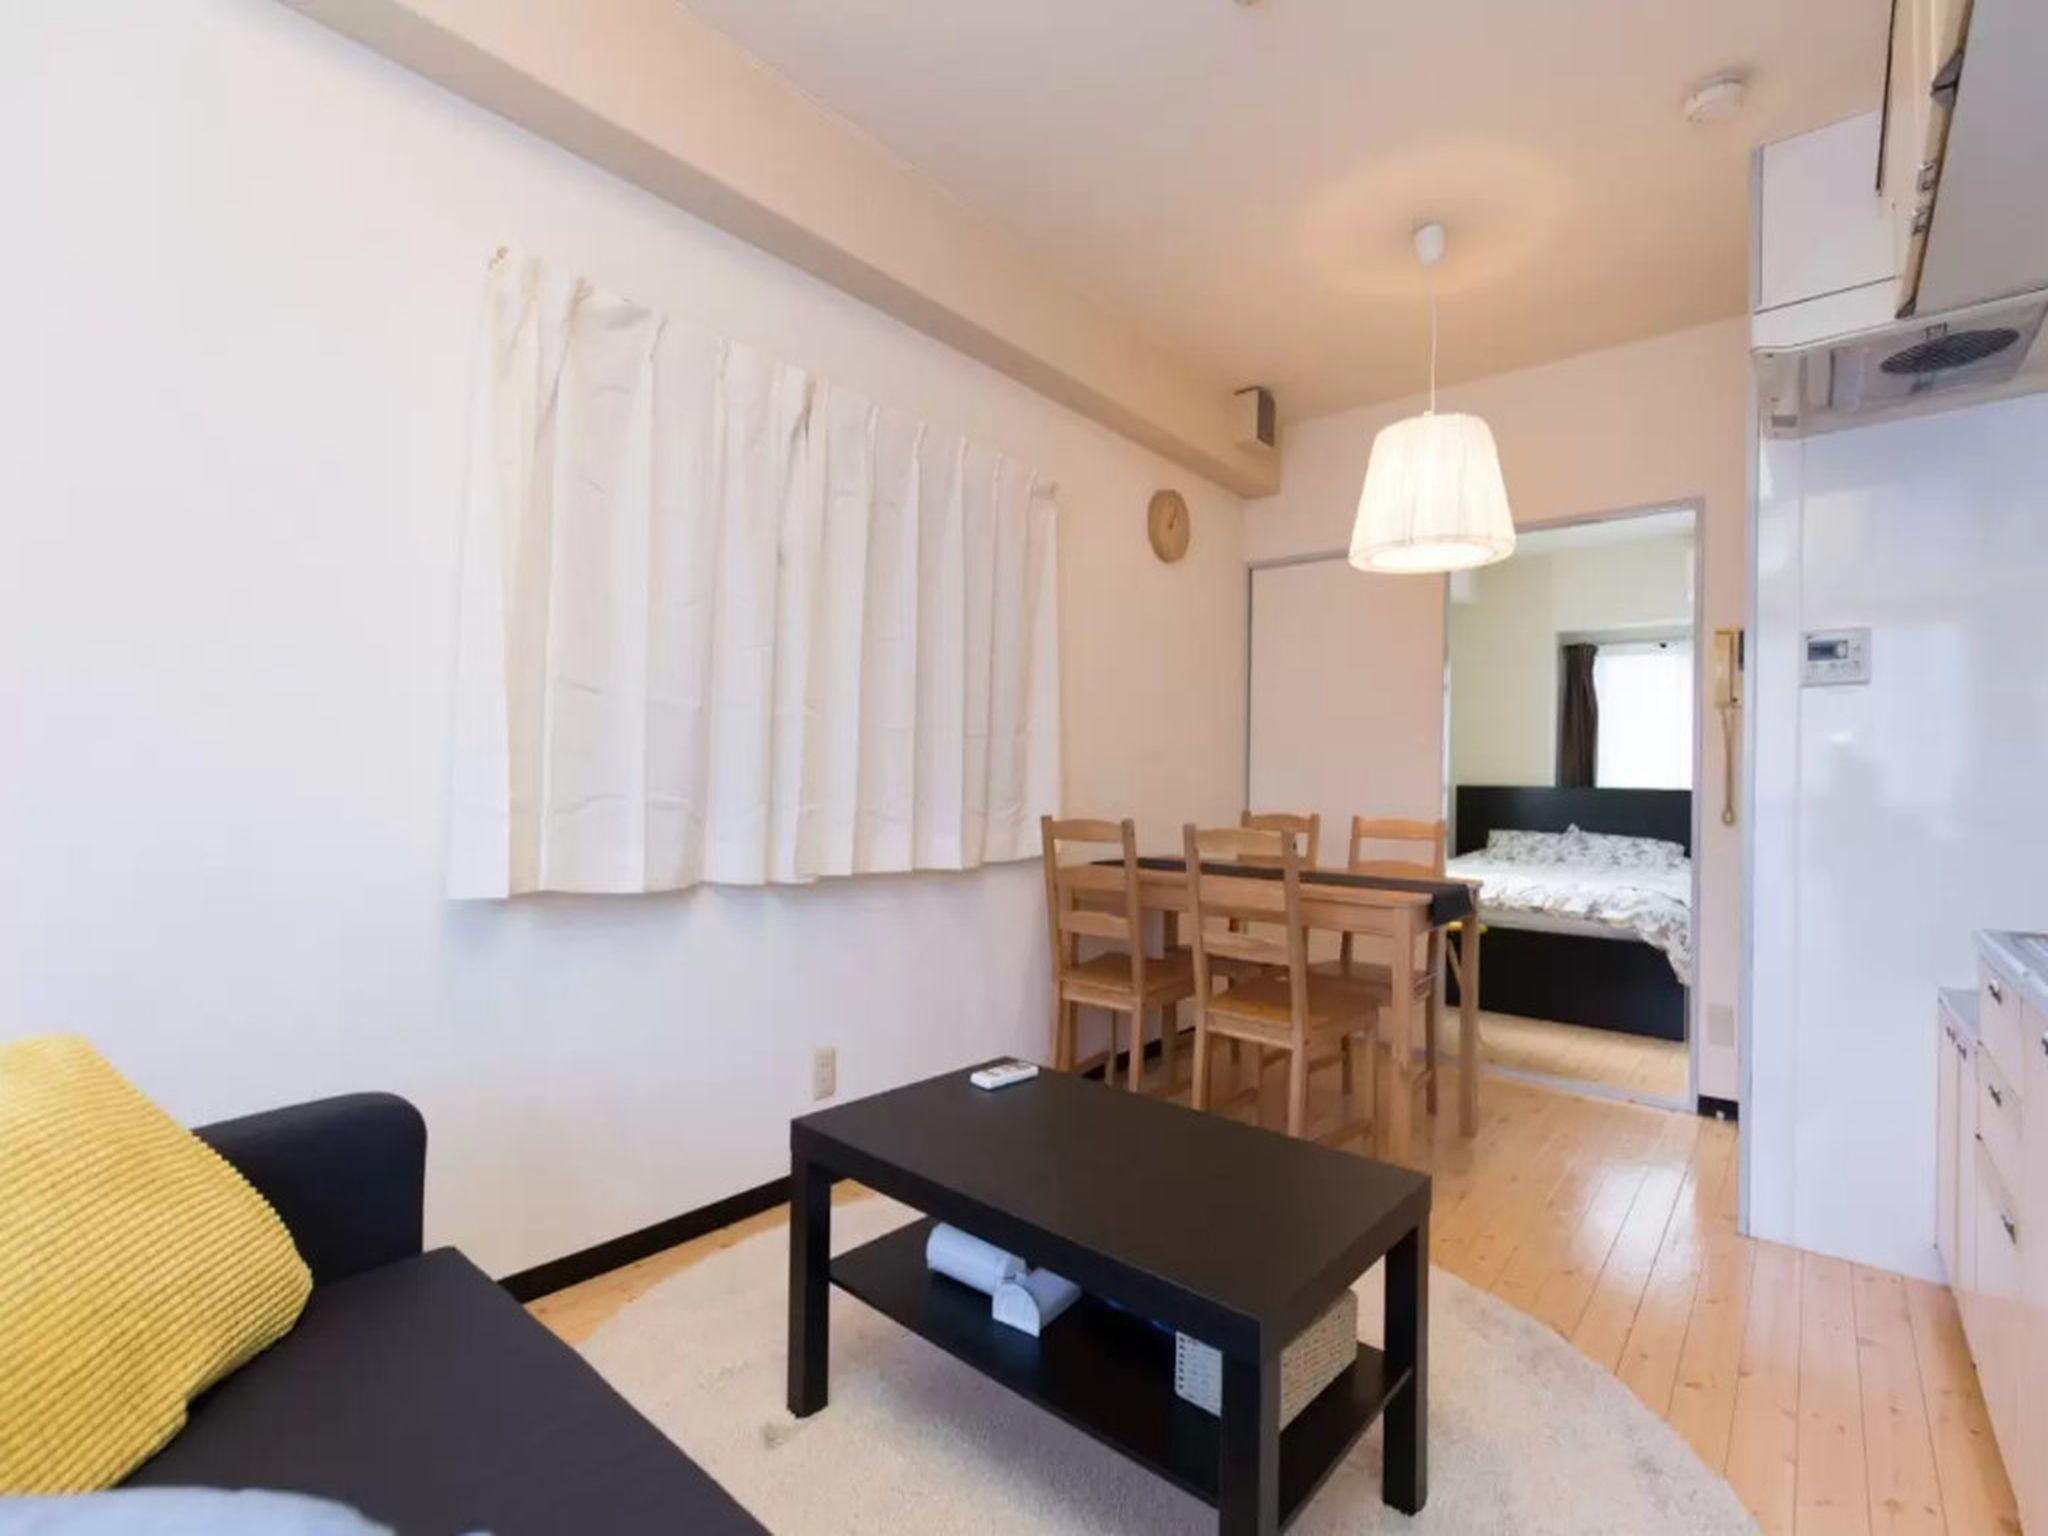 Staynest Japan Hotels And Homestay Rentals Vacation